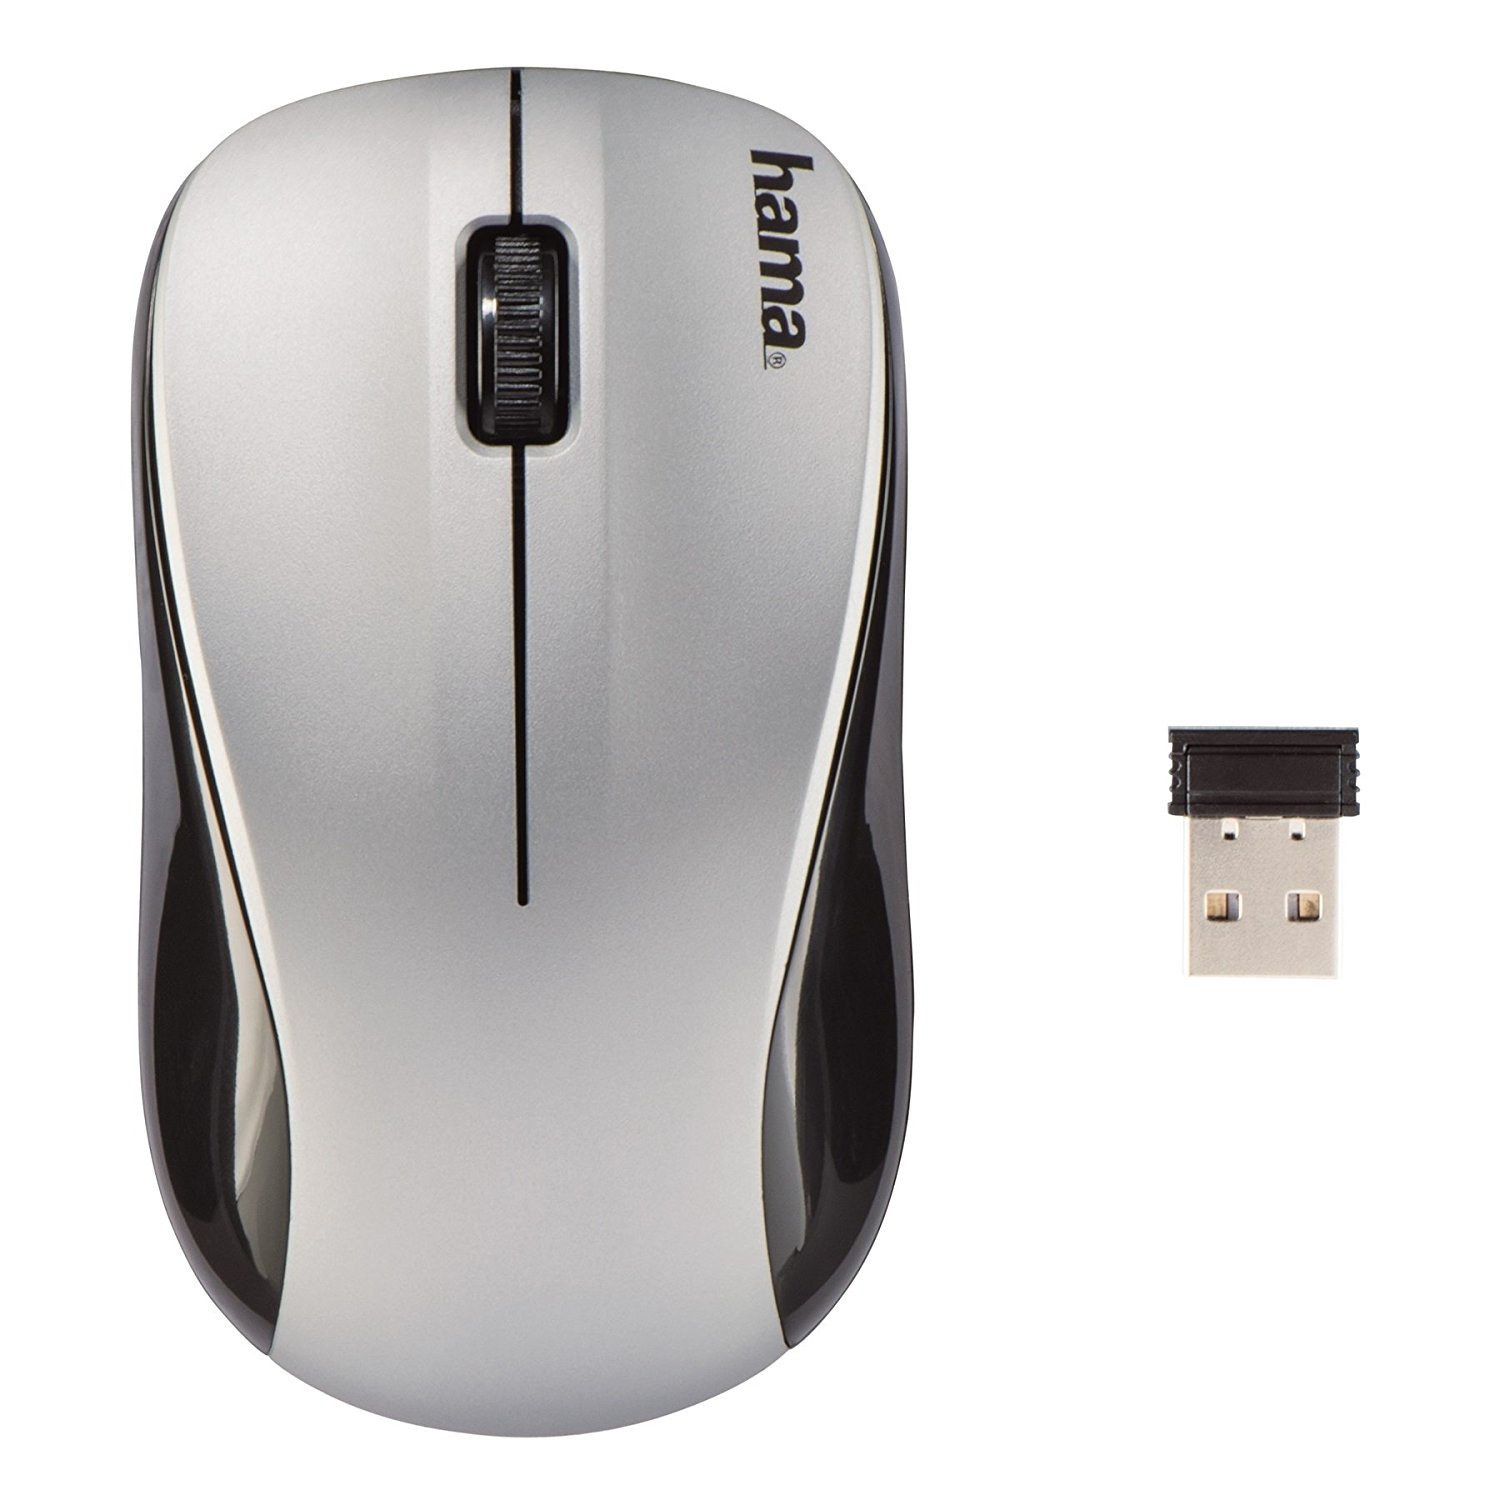 MOUSE OTTICO WIRELESS HAMA MAMYIA30545